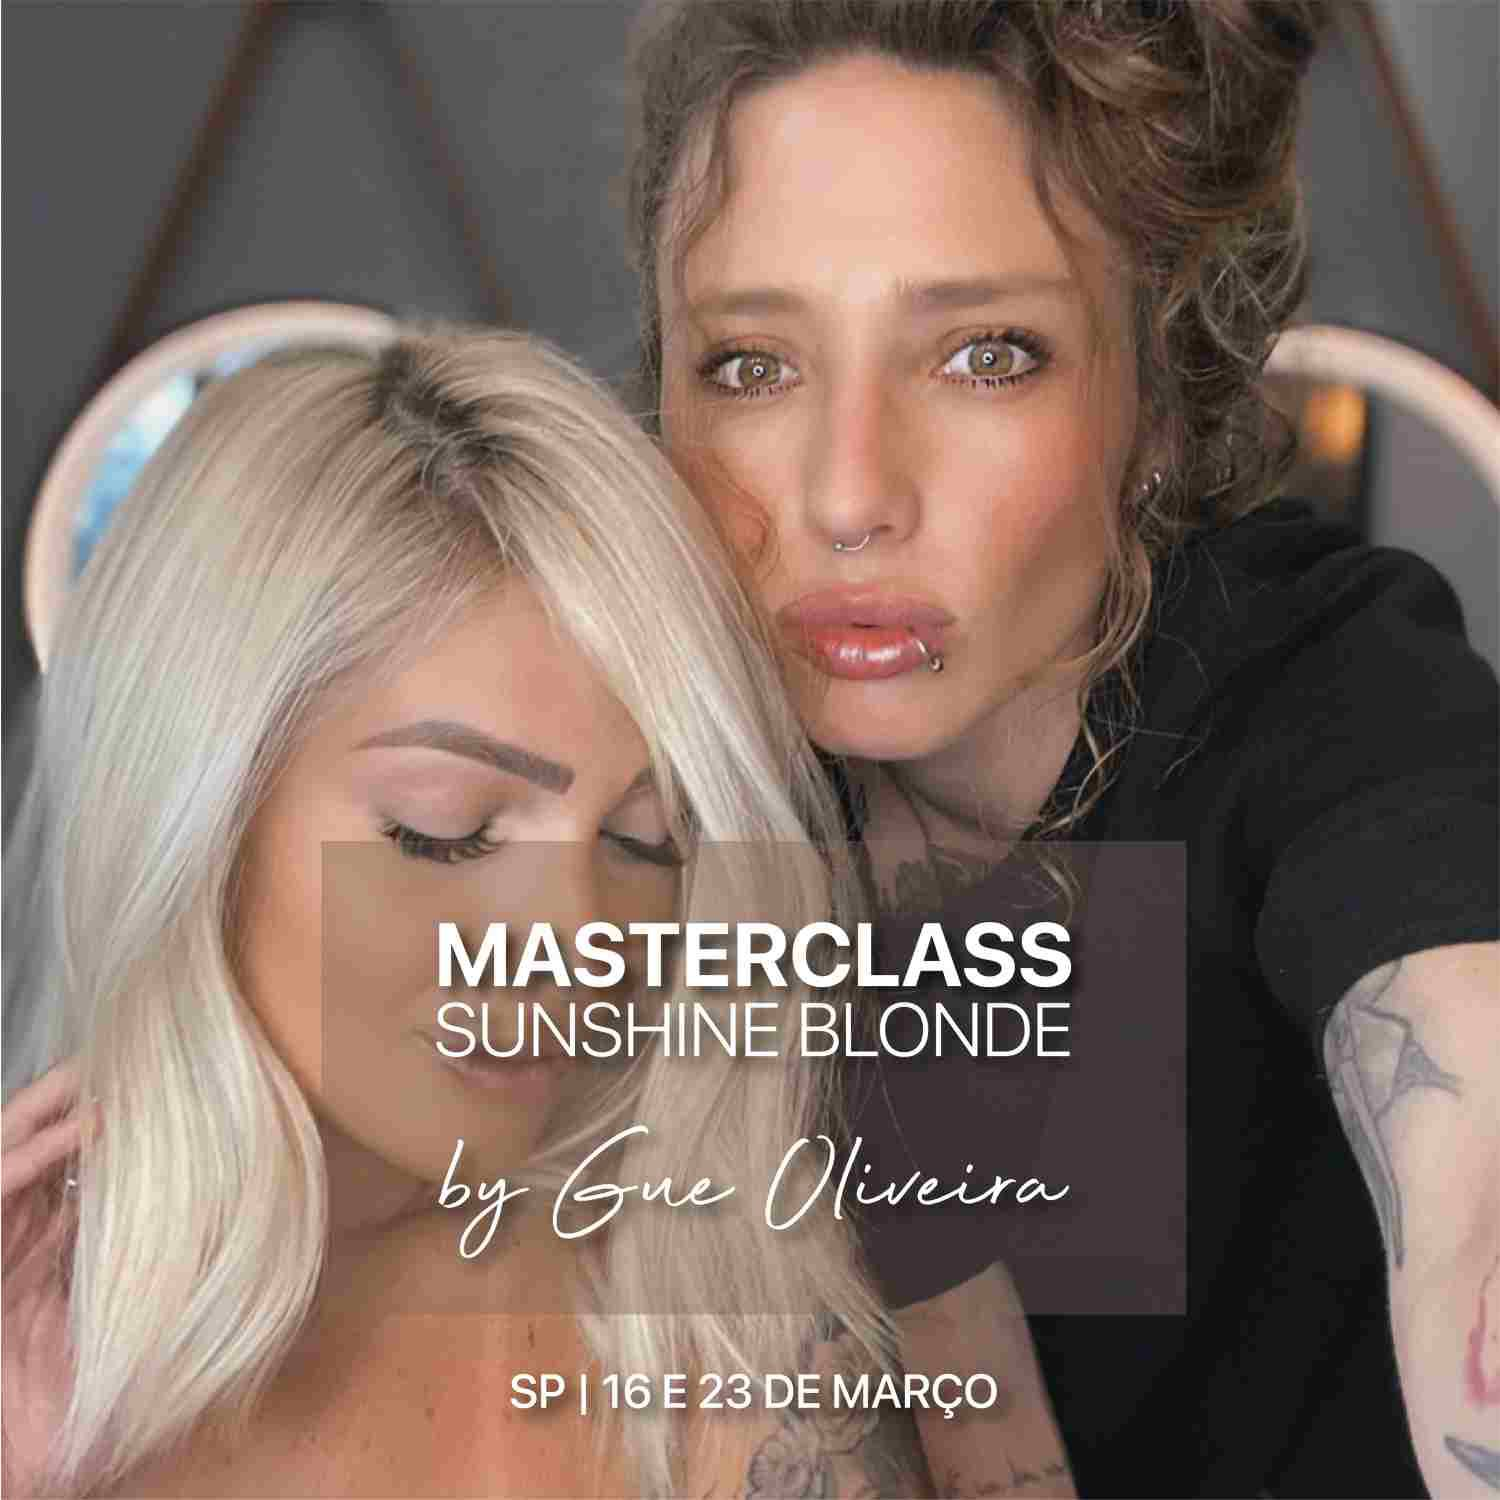 Masterclass Sunshine Blonde By Gue Oliveira